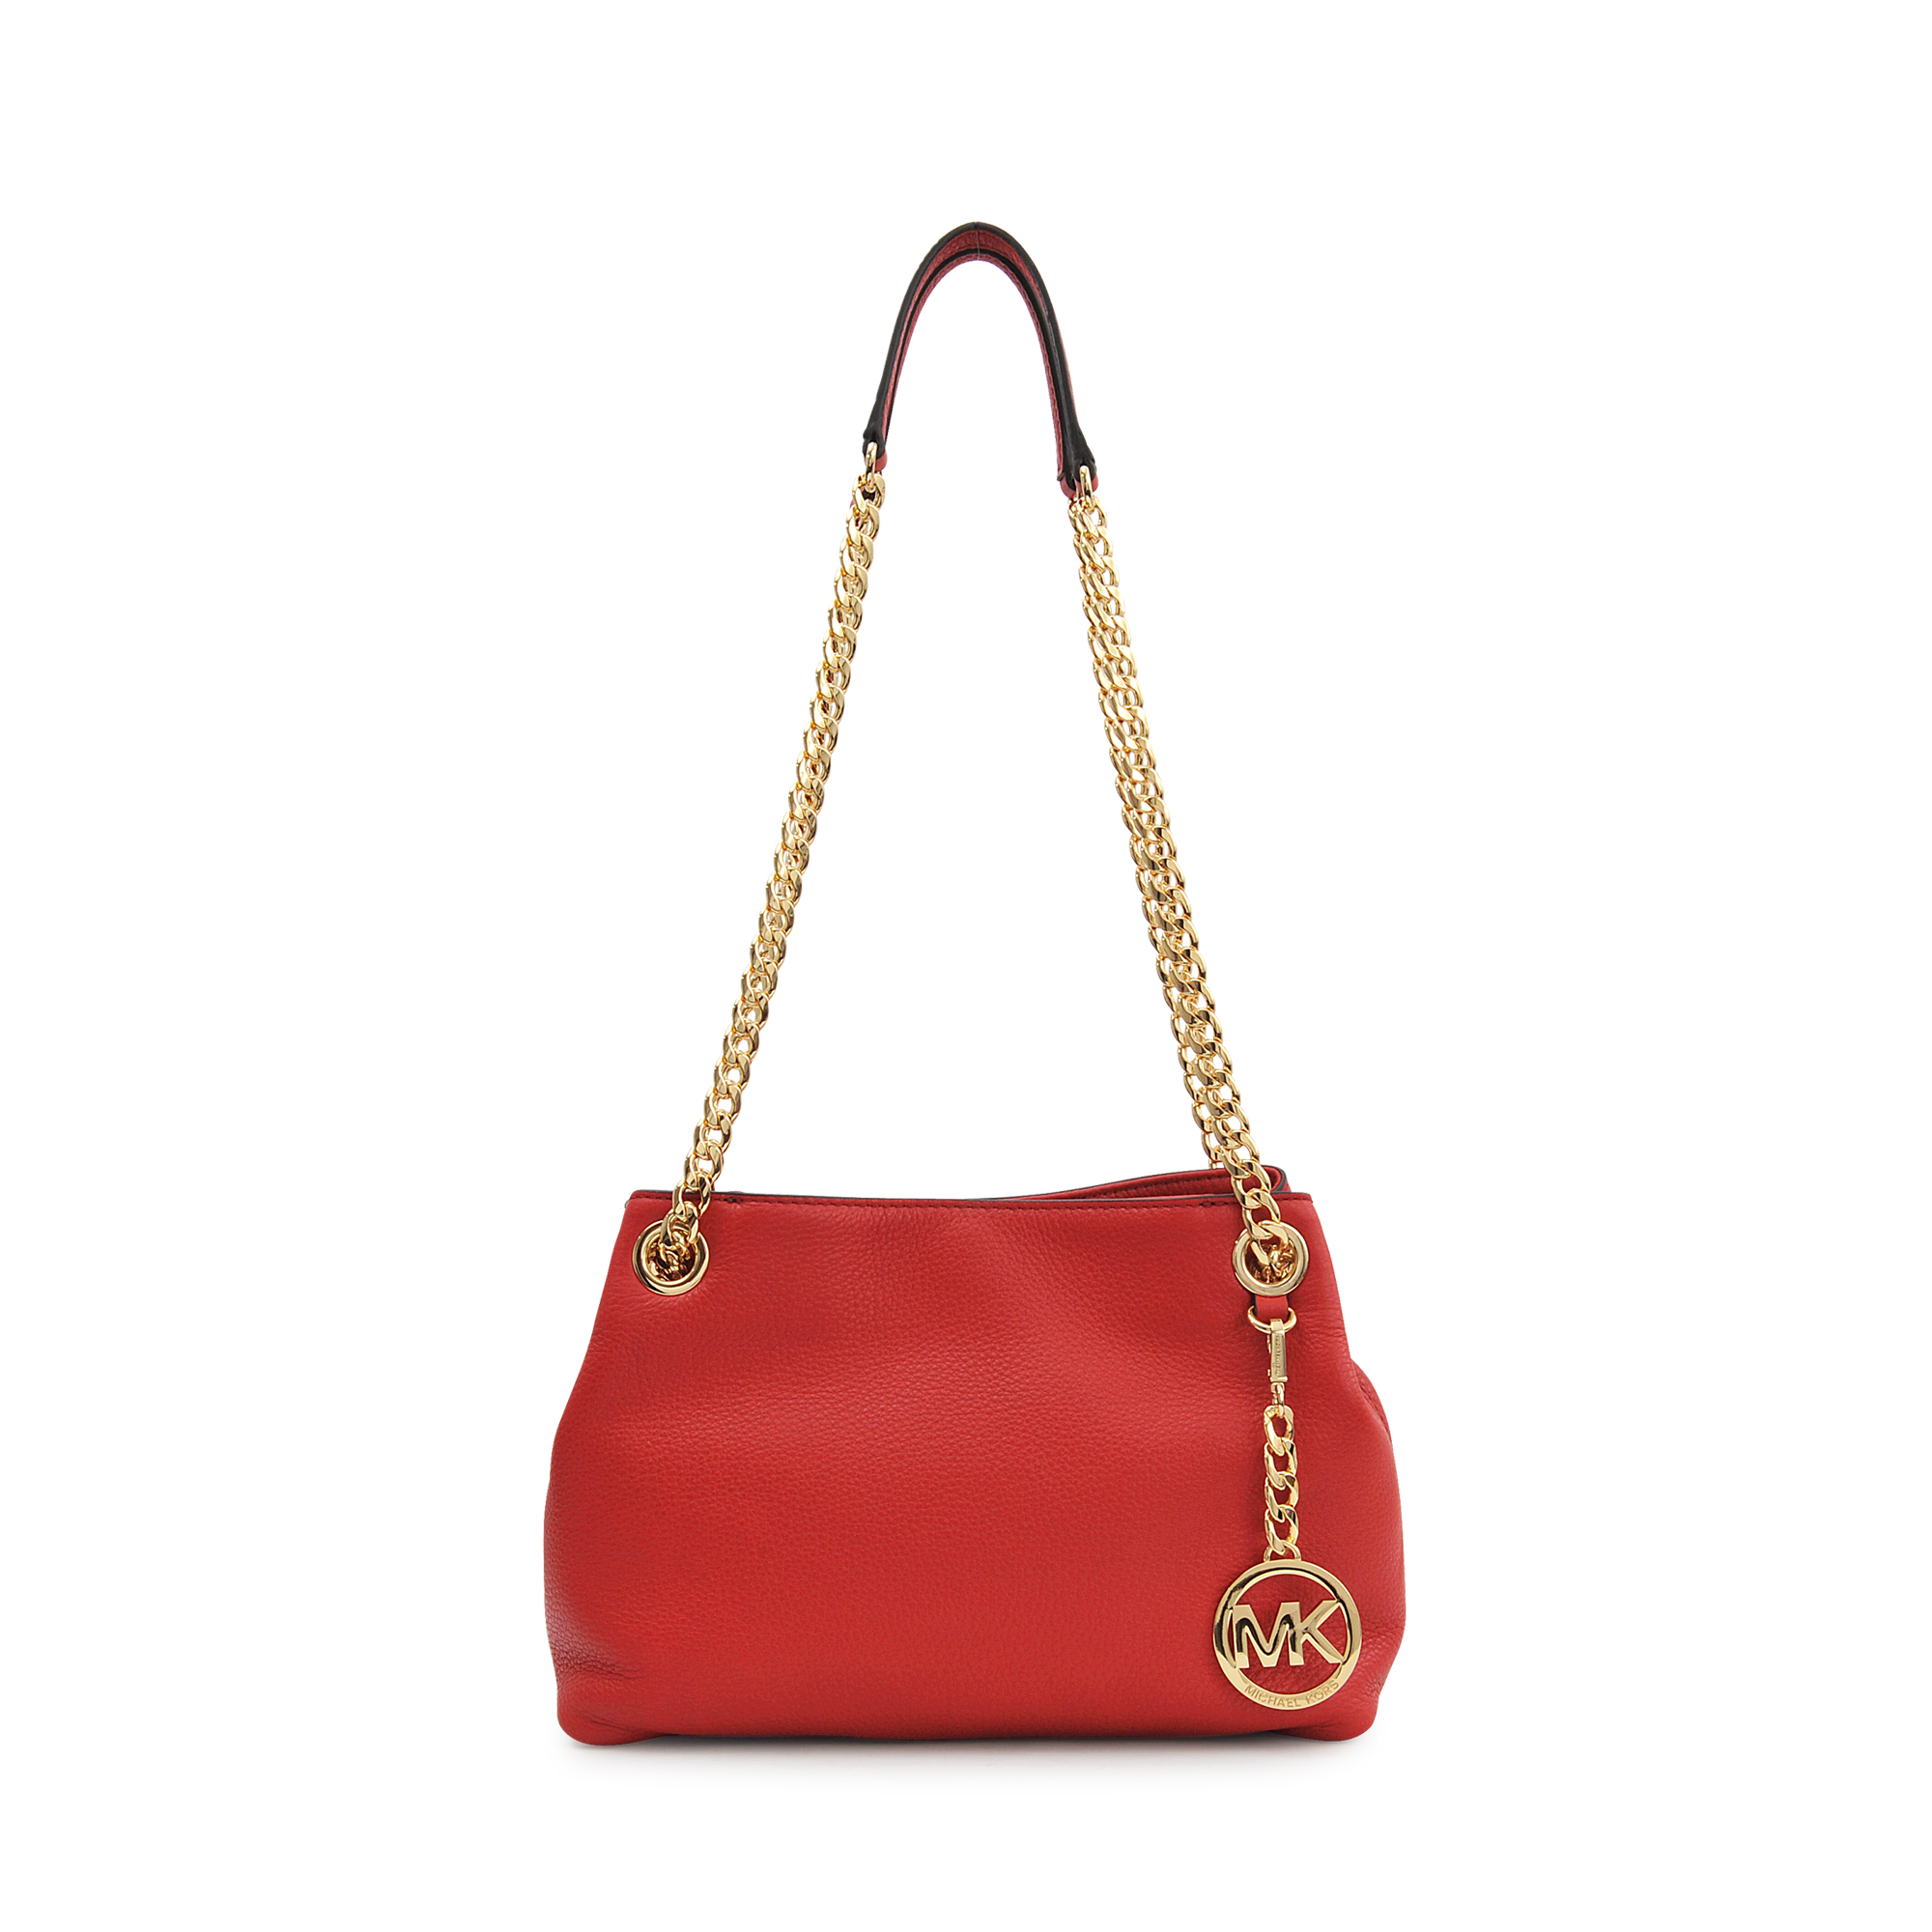 62128fb68a1d Lyst - Michael Kors Jet Set Chain Md Messenger Bag in Red